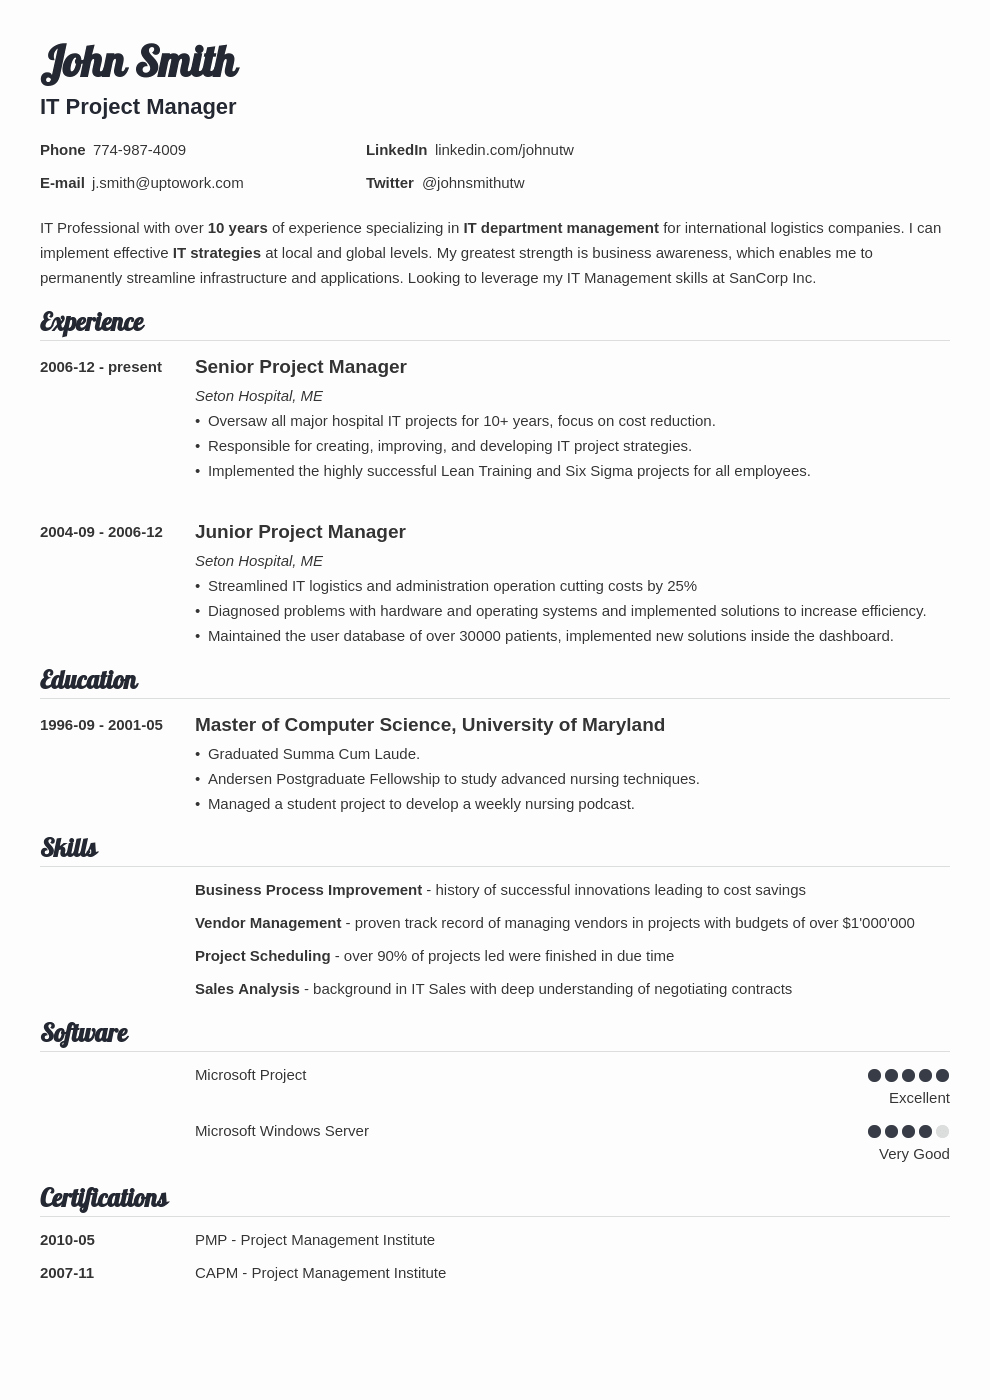 Download Free Professional Resume Templates Luxury 20 Resume Templates [download] Create Your Resume In 5